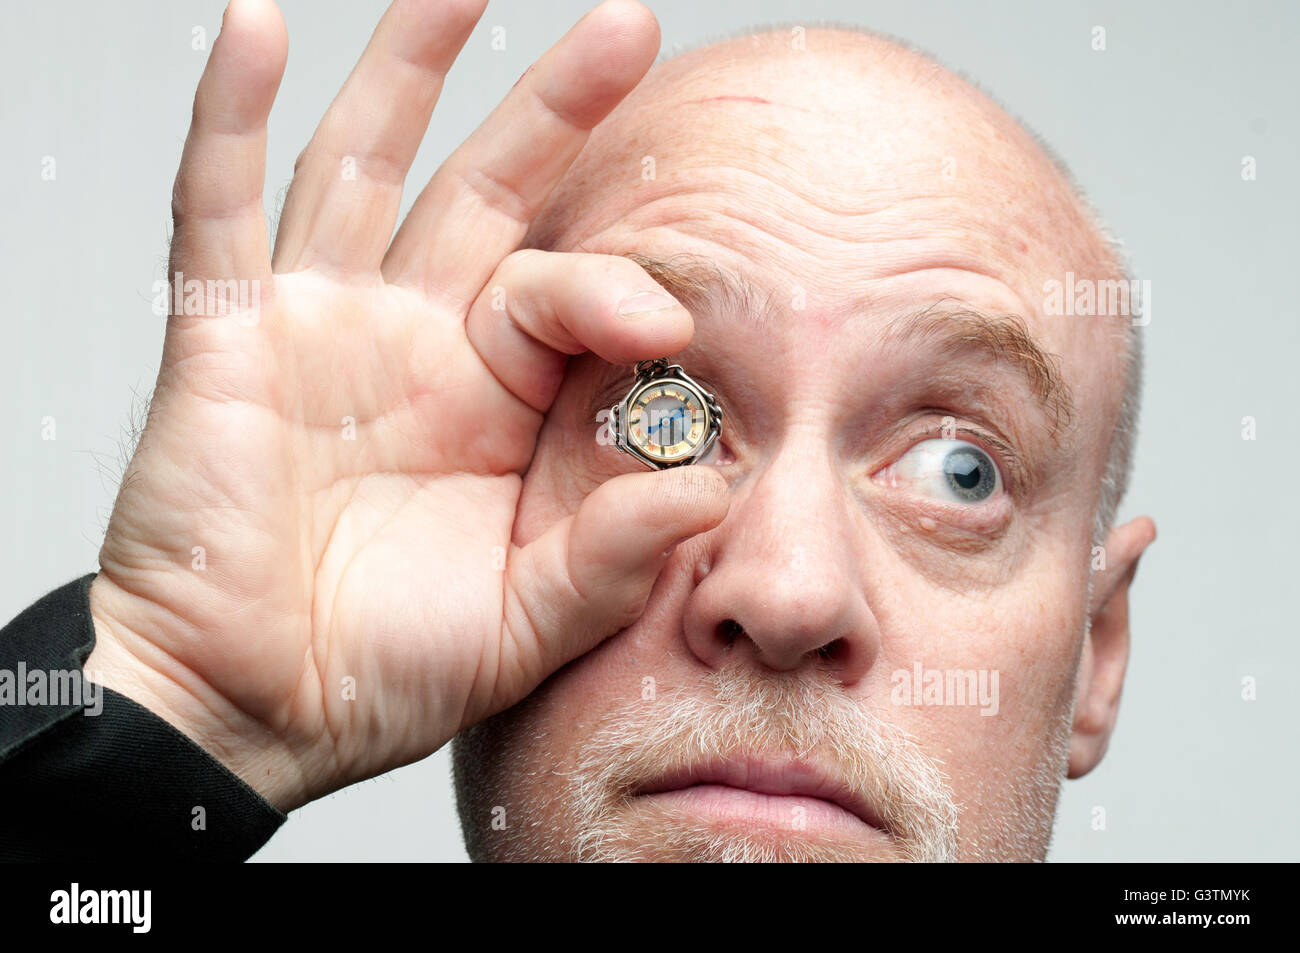 Close up of 1 person, man, with antique compass as a feature, placed over one eye Stock Photo